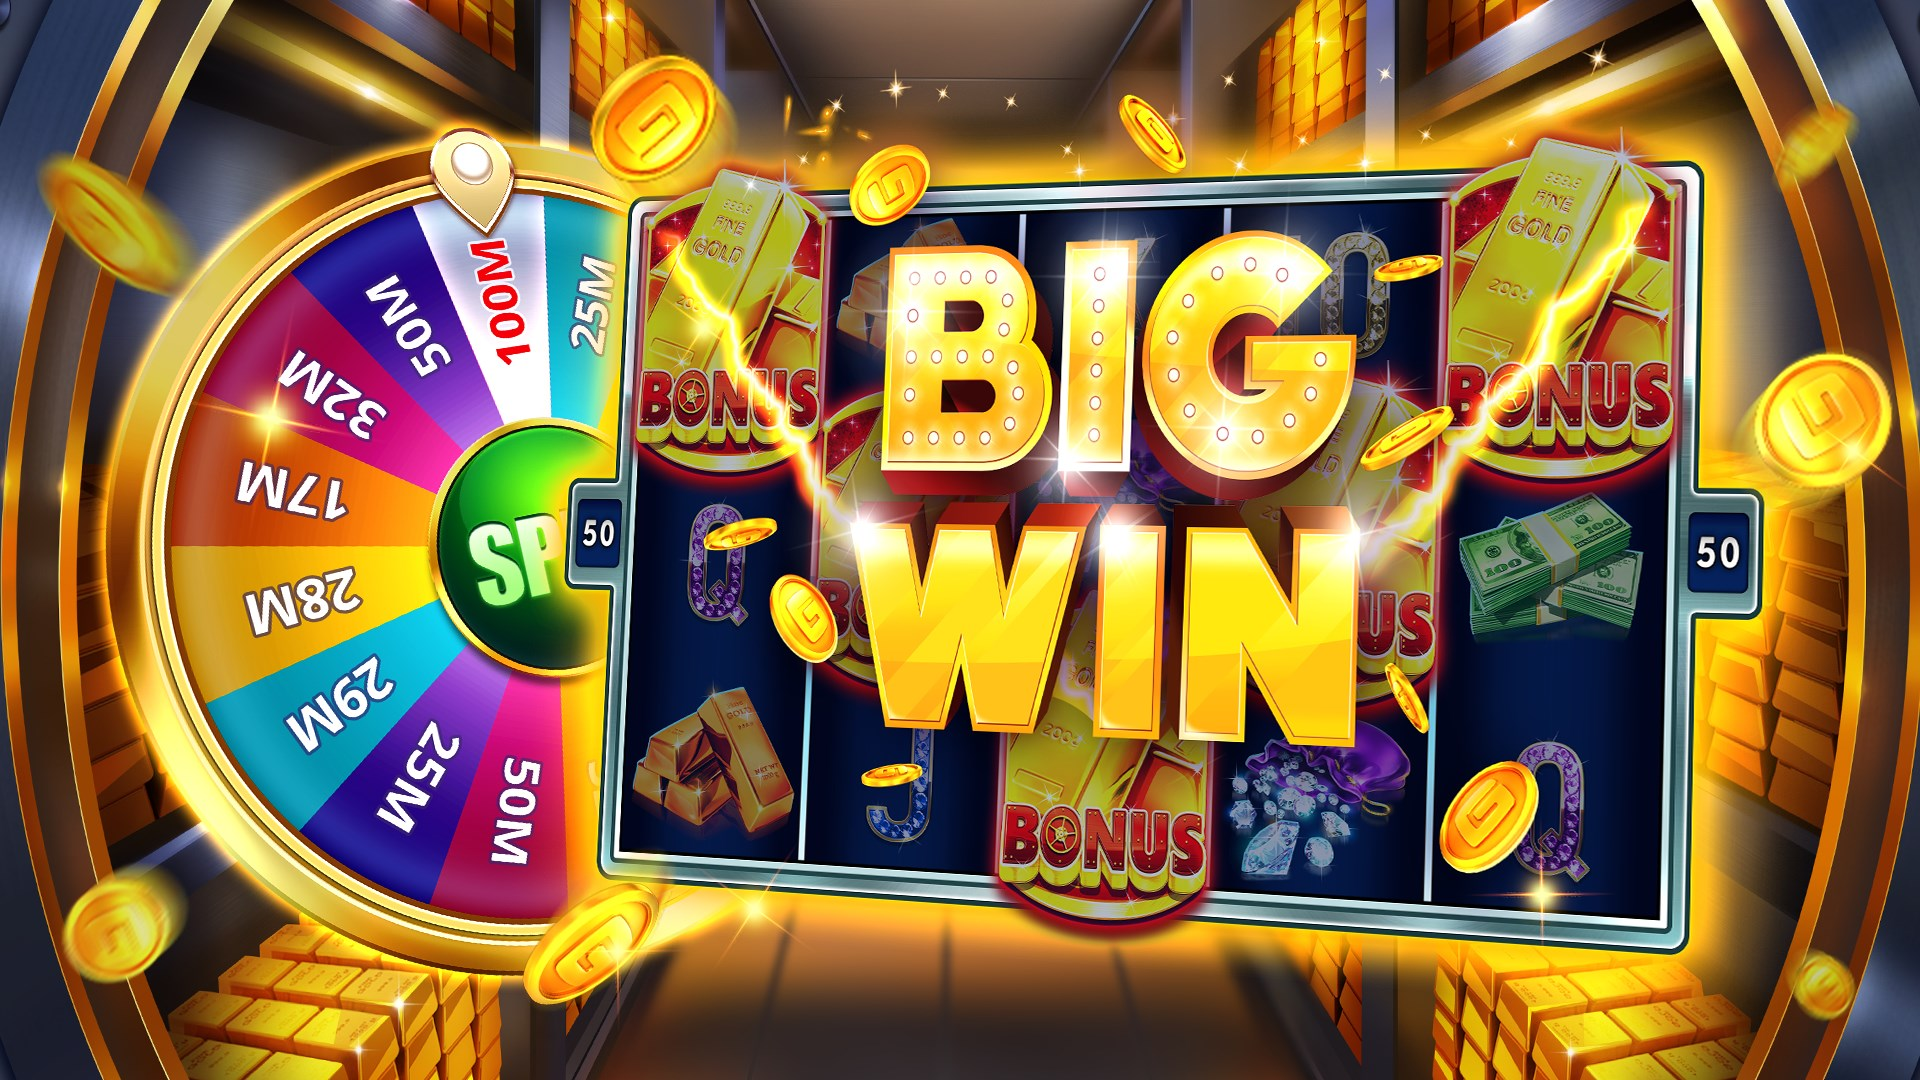 New Free Slots Bonus Games